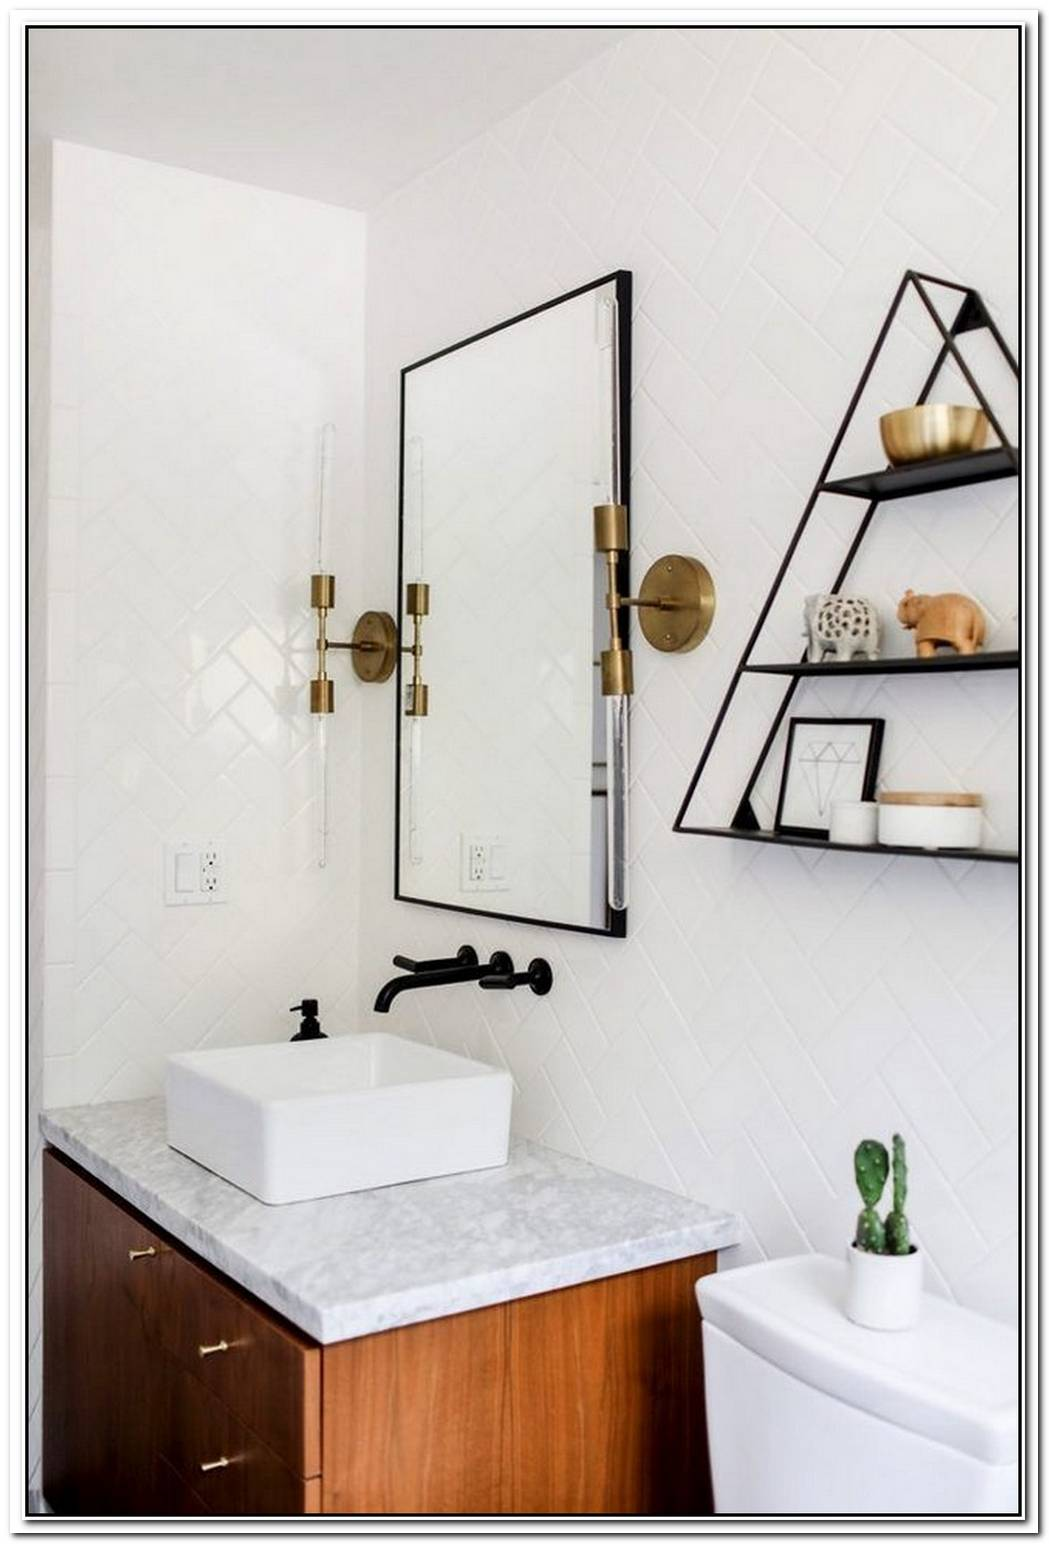 12 Brilliant Bathroom Light Fixture Ideas